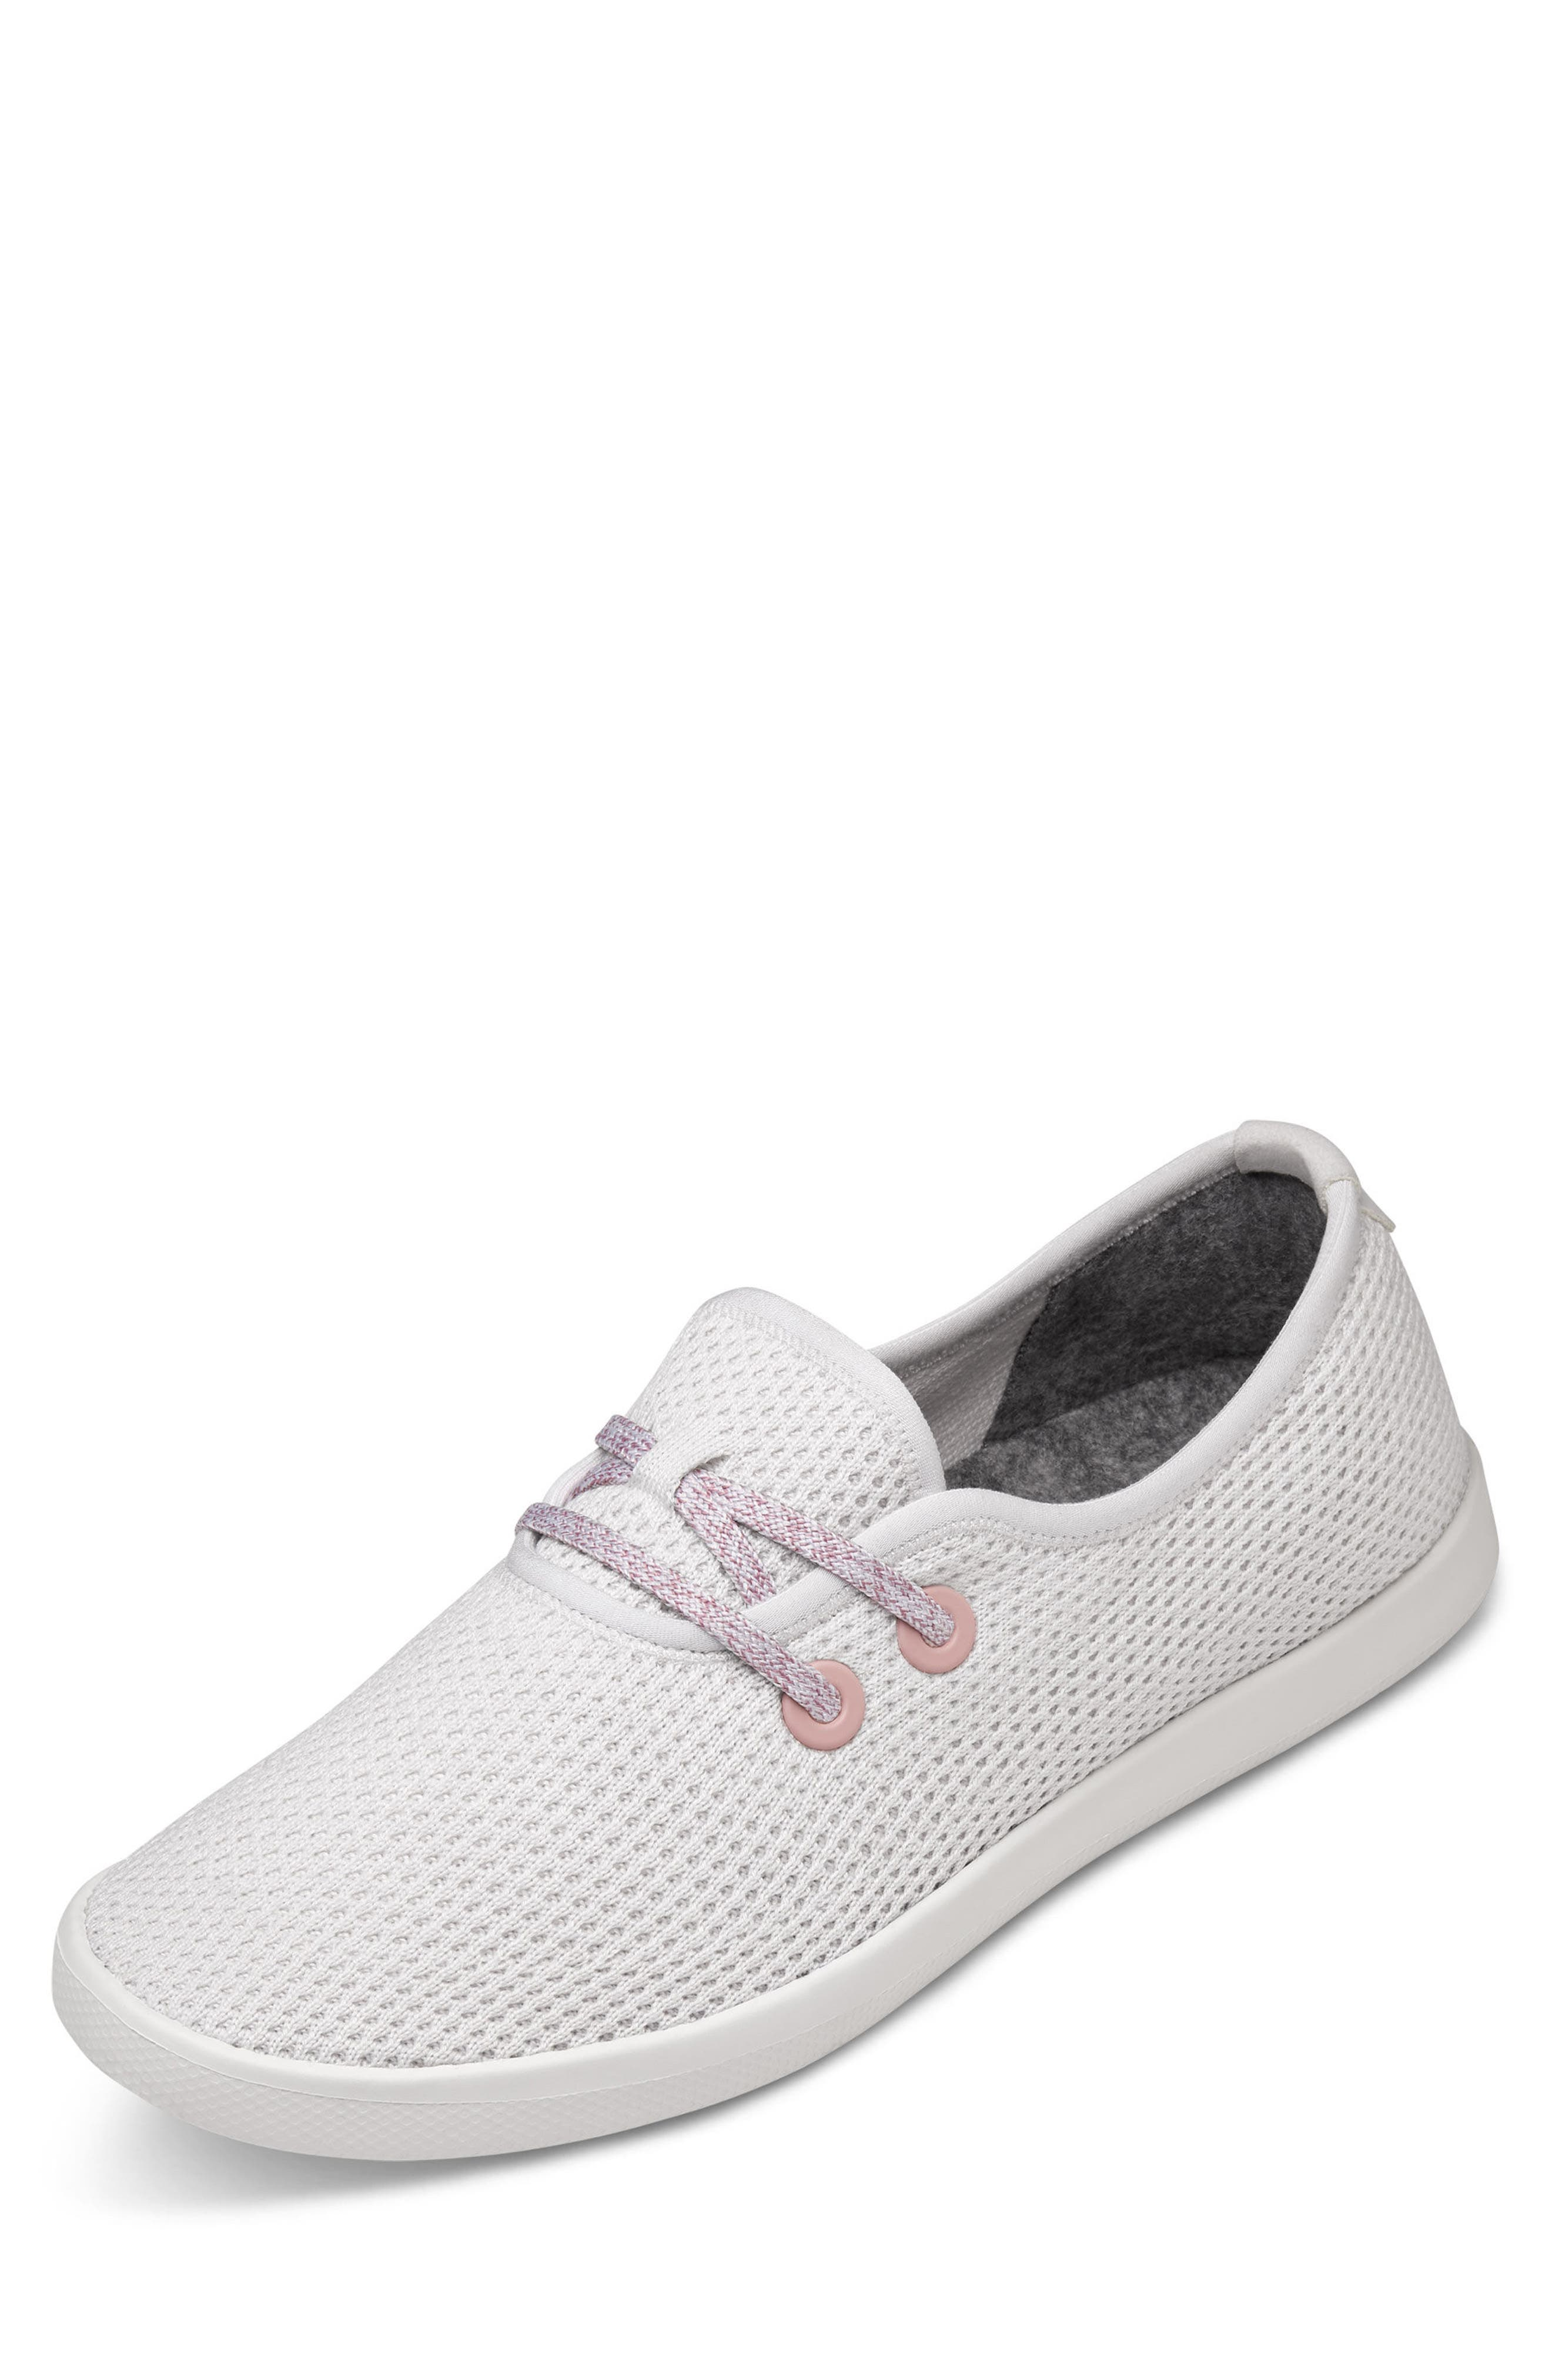 Main Image - Allbirds Tree Skipper (Women) (Nordstrom Exclusive)